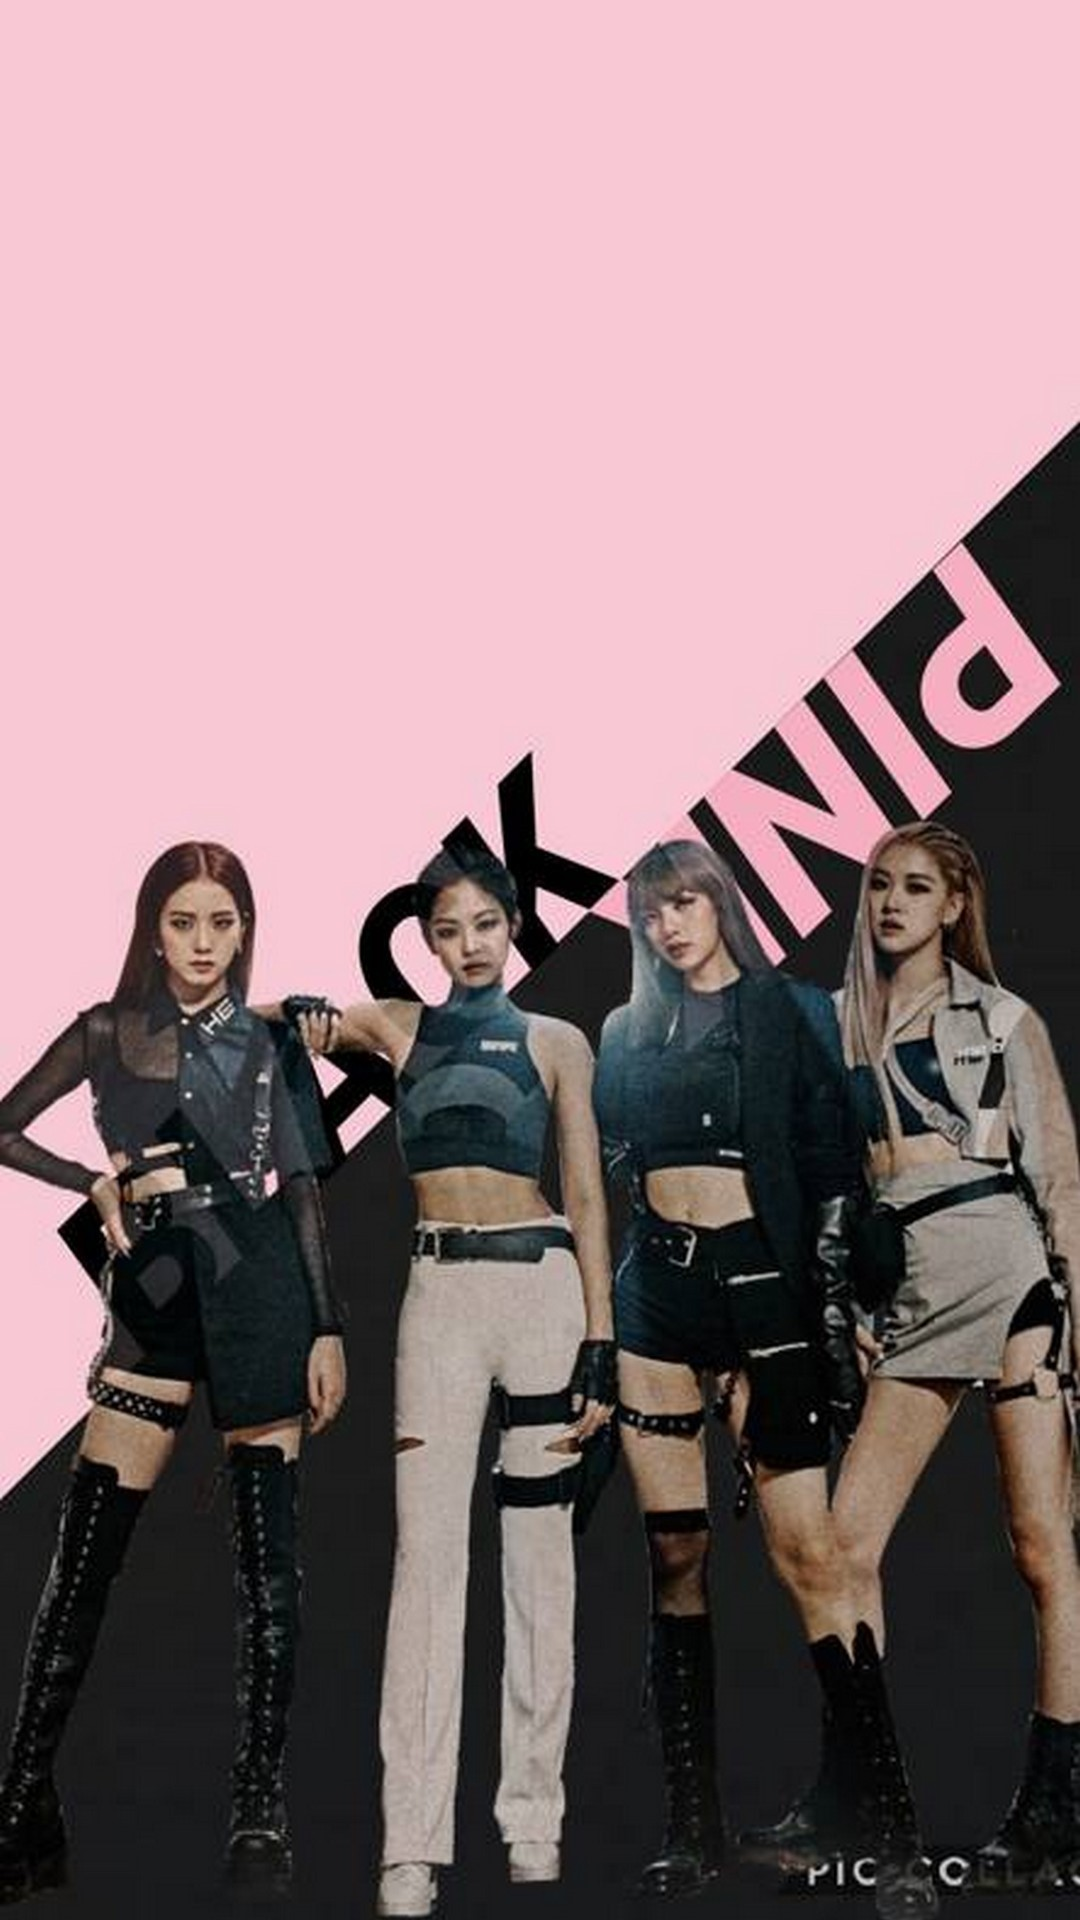 Blackpink Iphone Wallpaper Kolpaper Awesome Free Hd Wallpapers